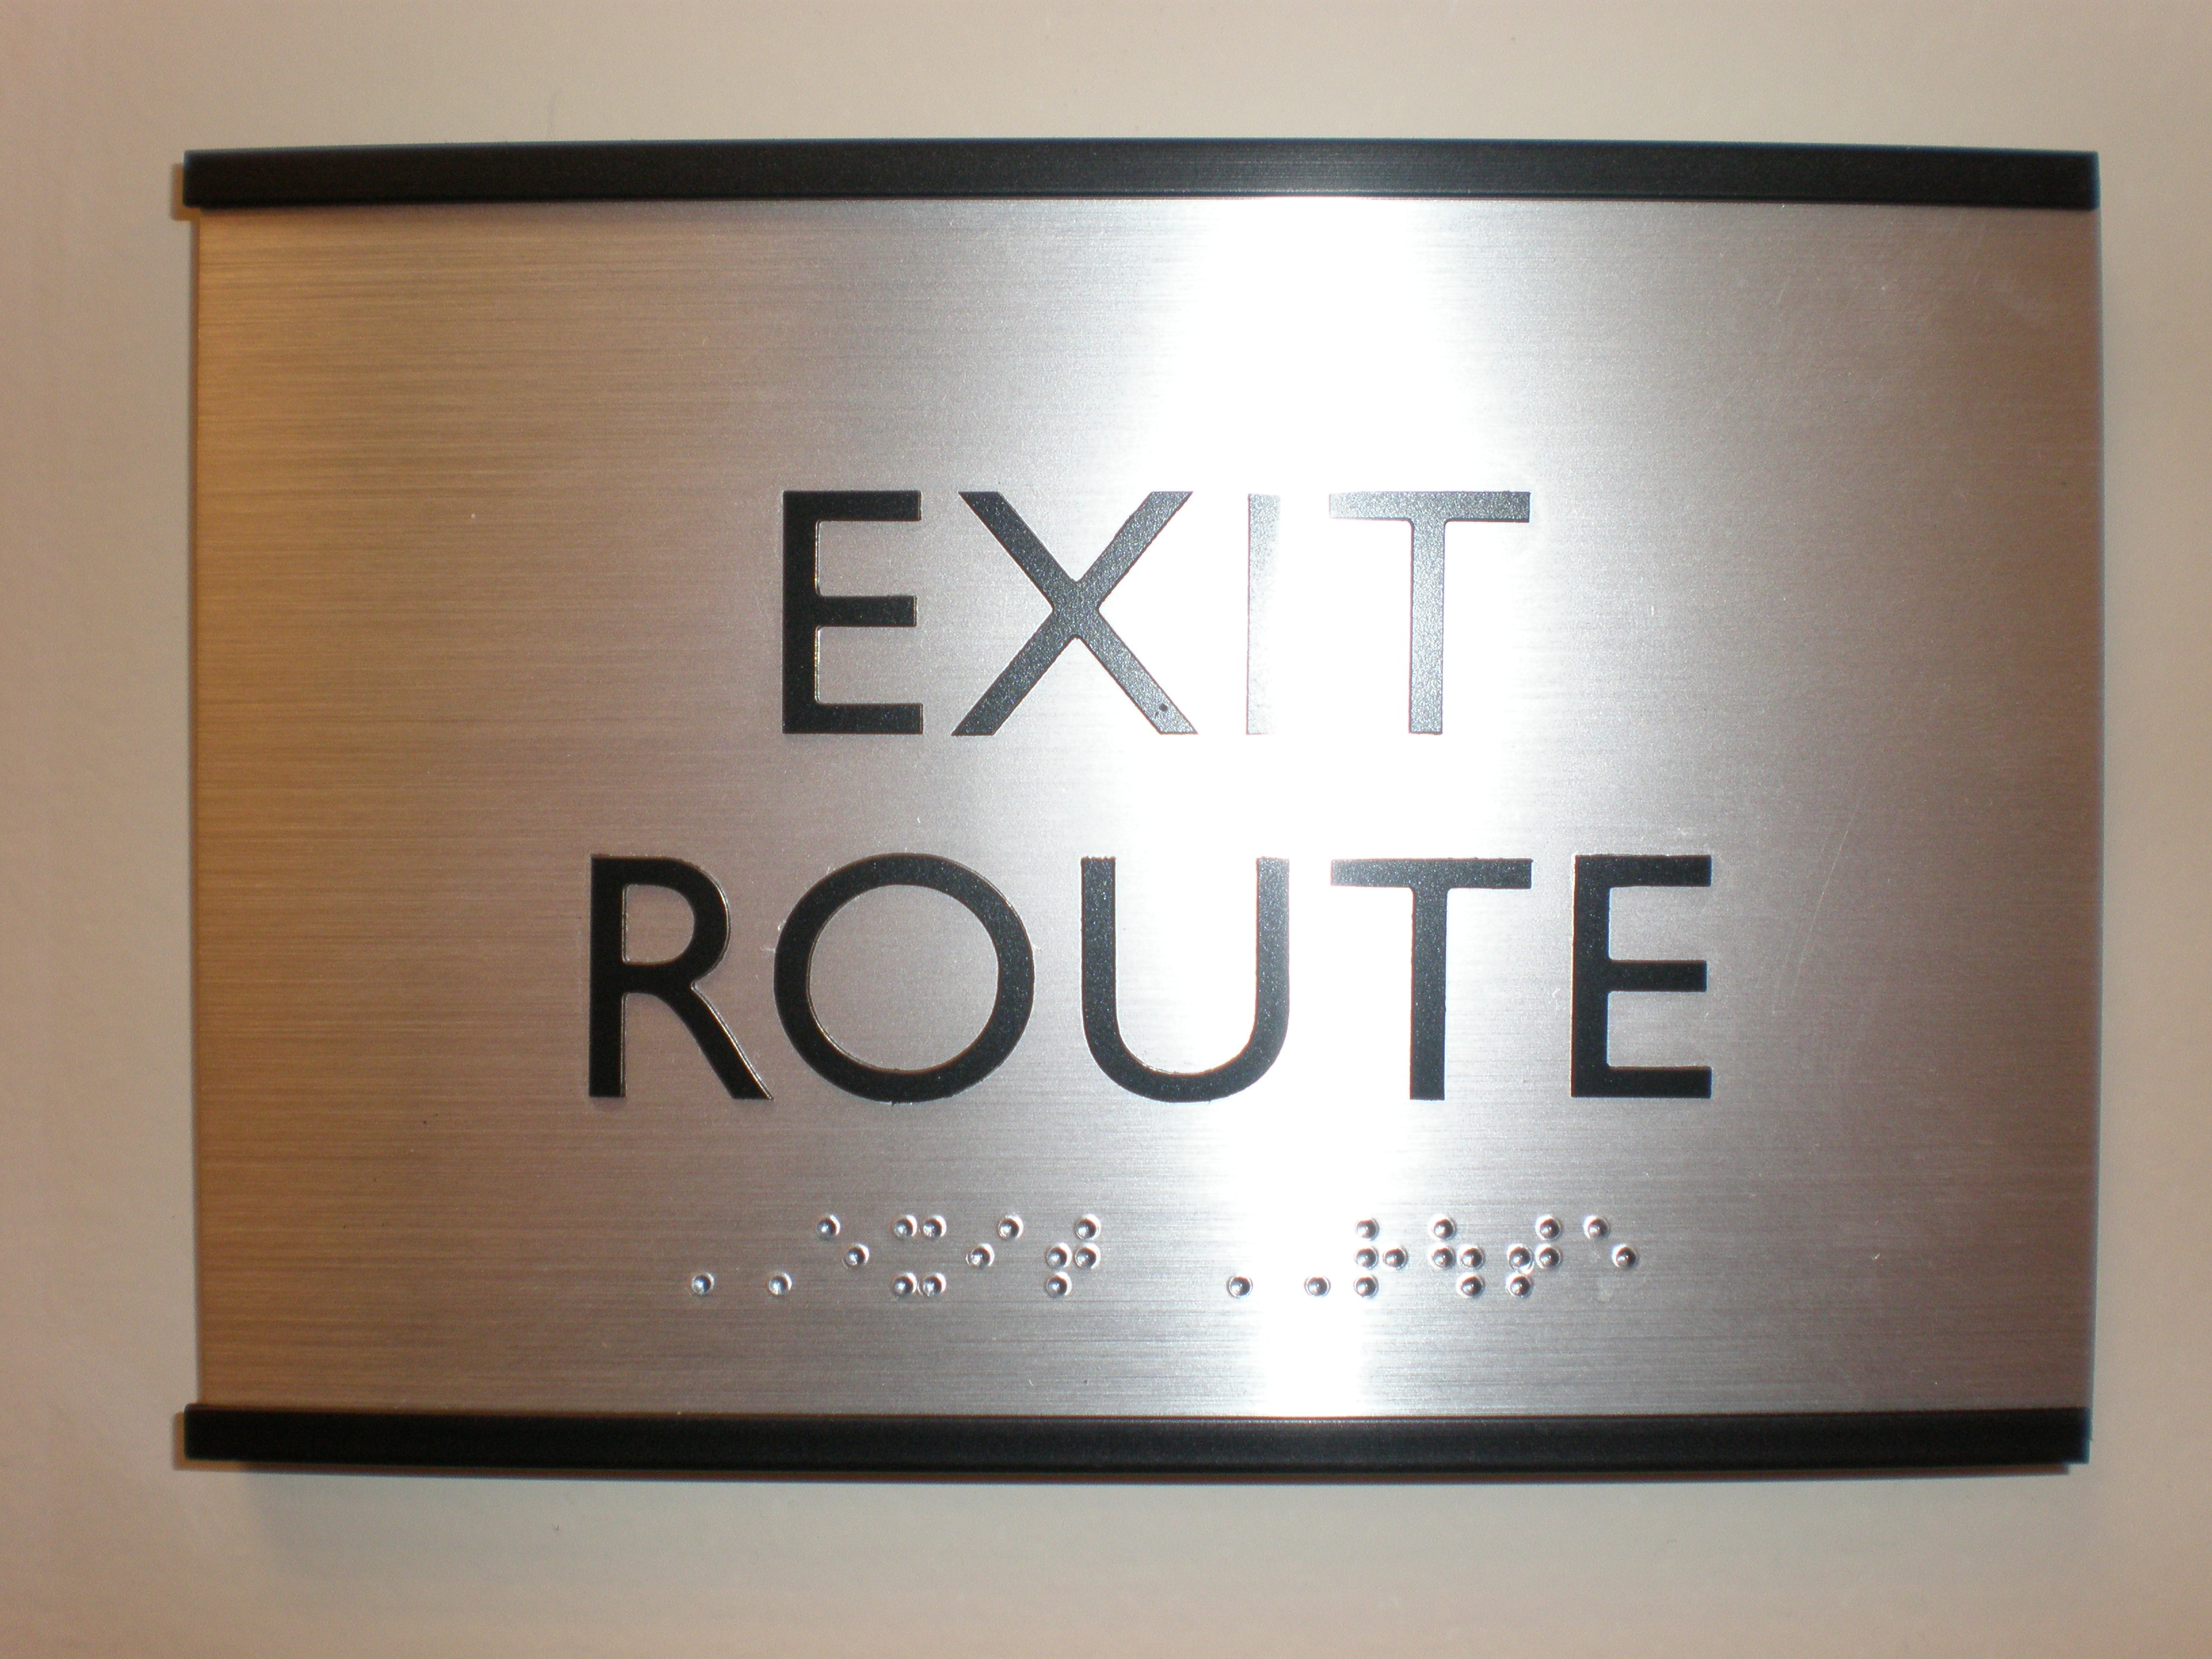 A braille sign description for an exit sign.